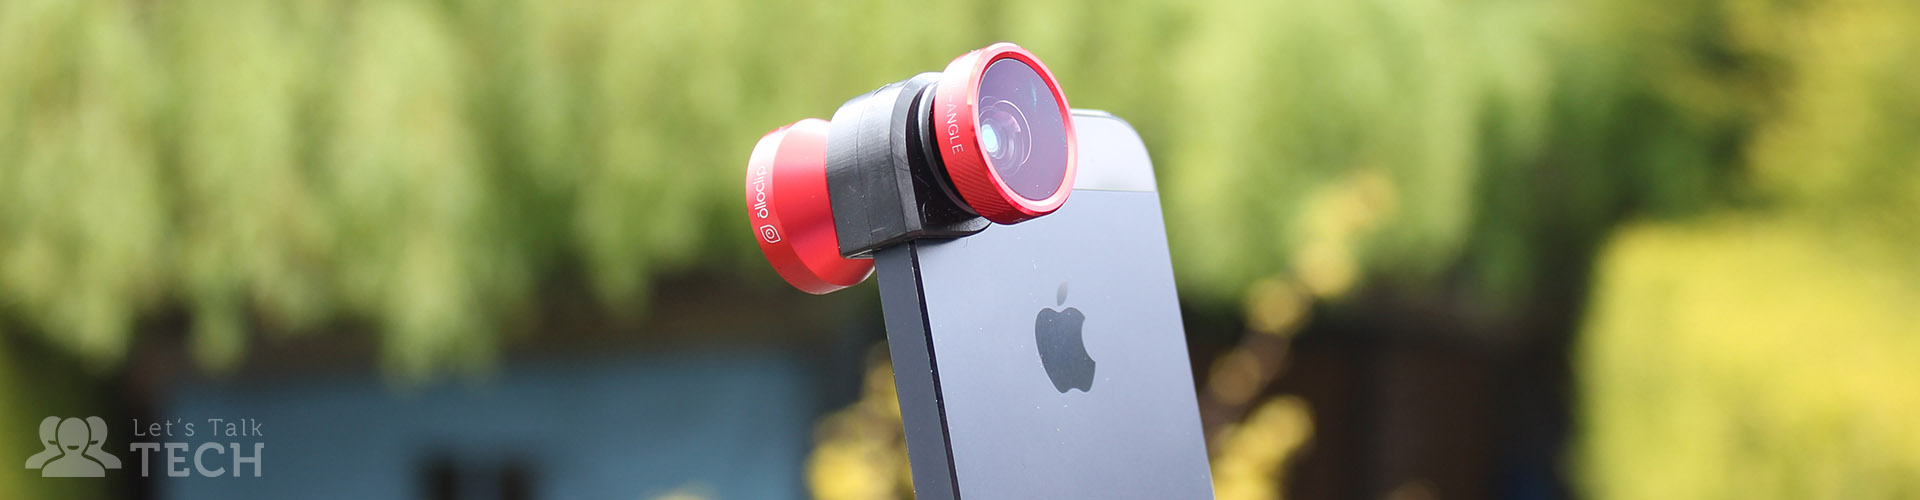 Olloclip 4-in-1 Lens for iPhone 5: 4x Ways To Have Fun With Your iPhone's Camera